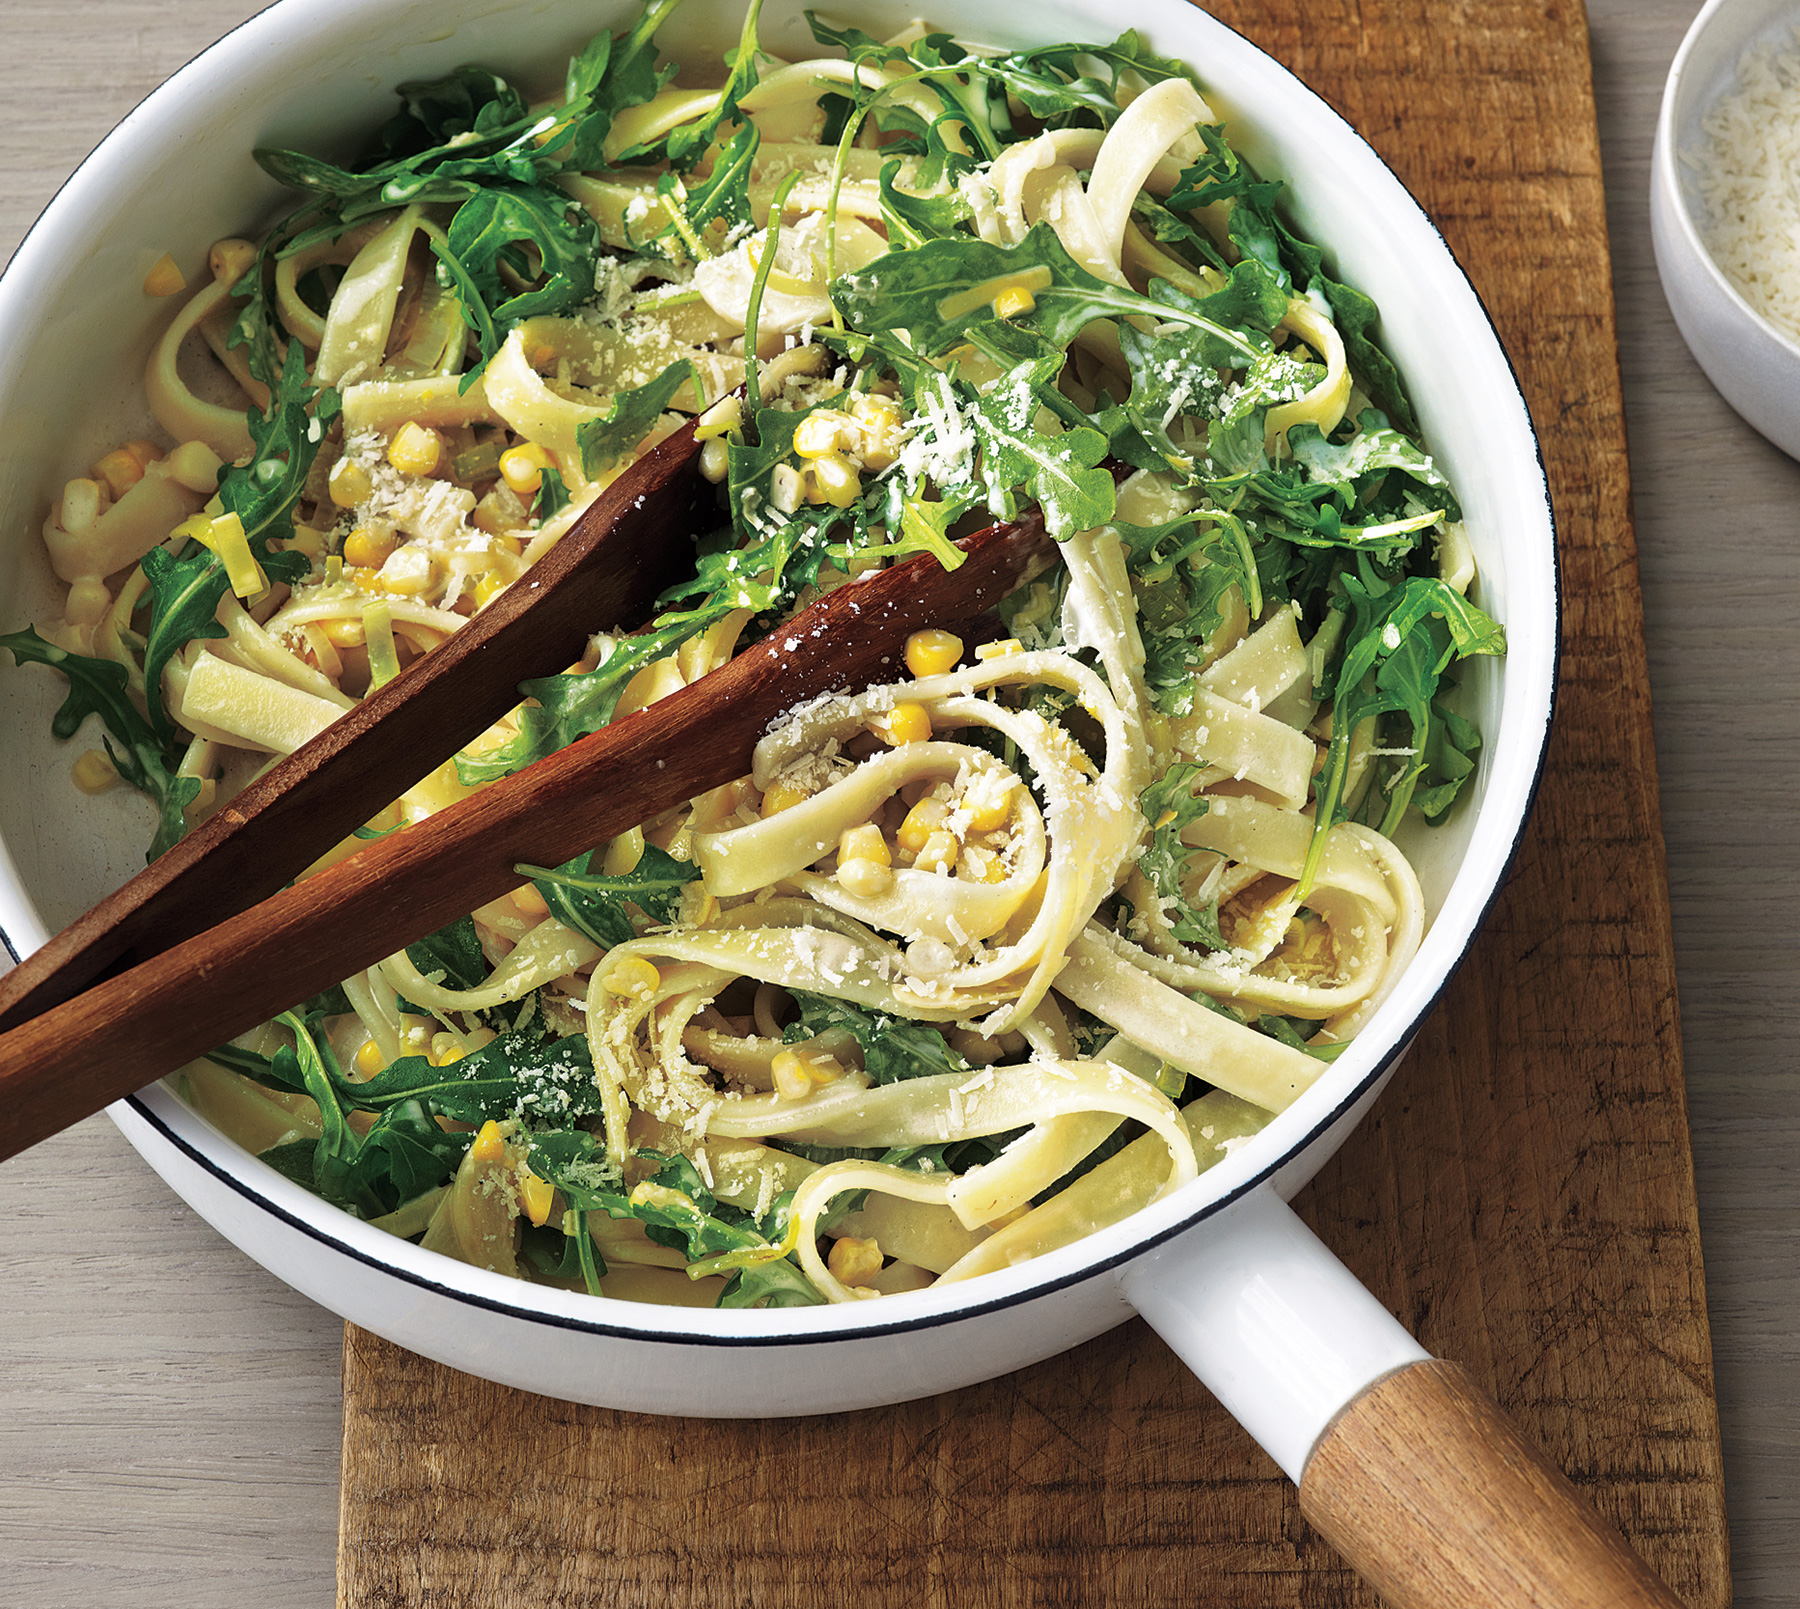 Creamy Fettuccine With Leeks, Corn, and Arugula